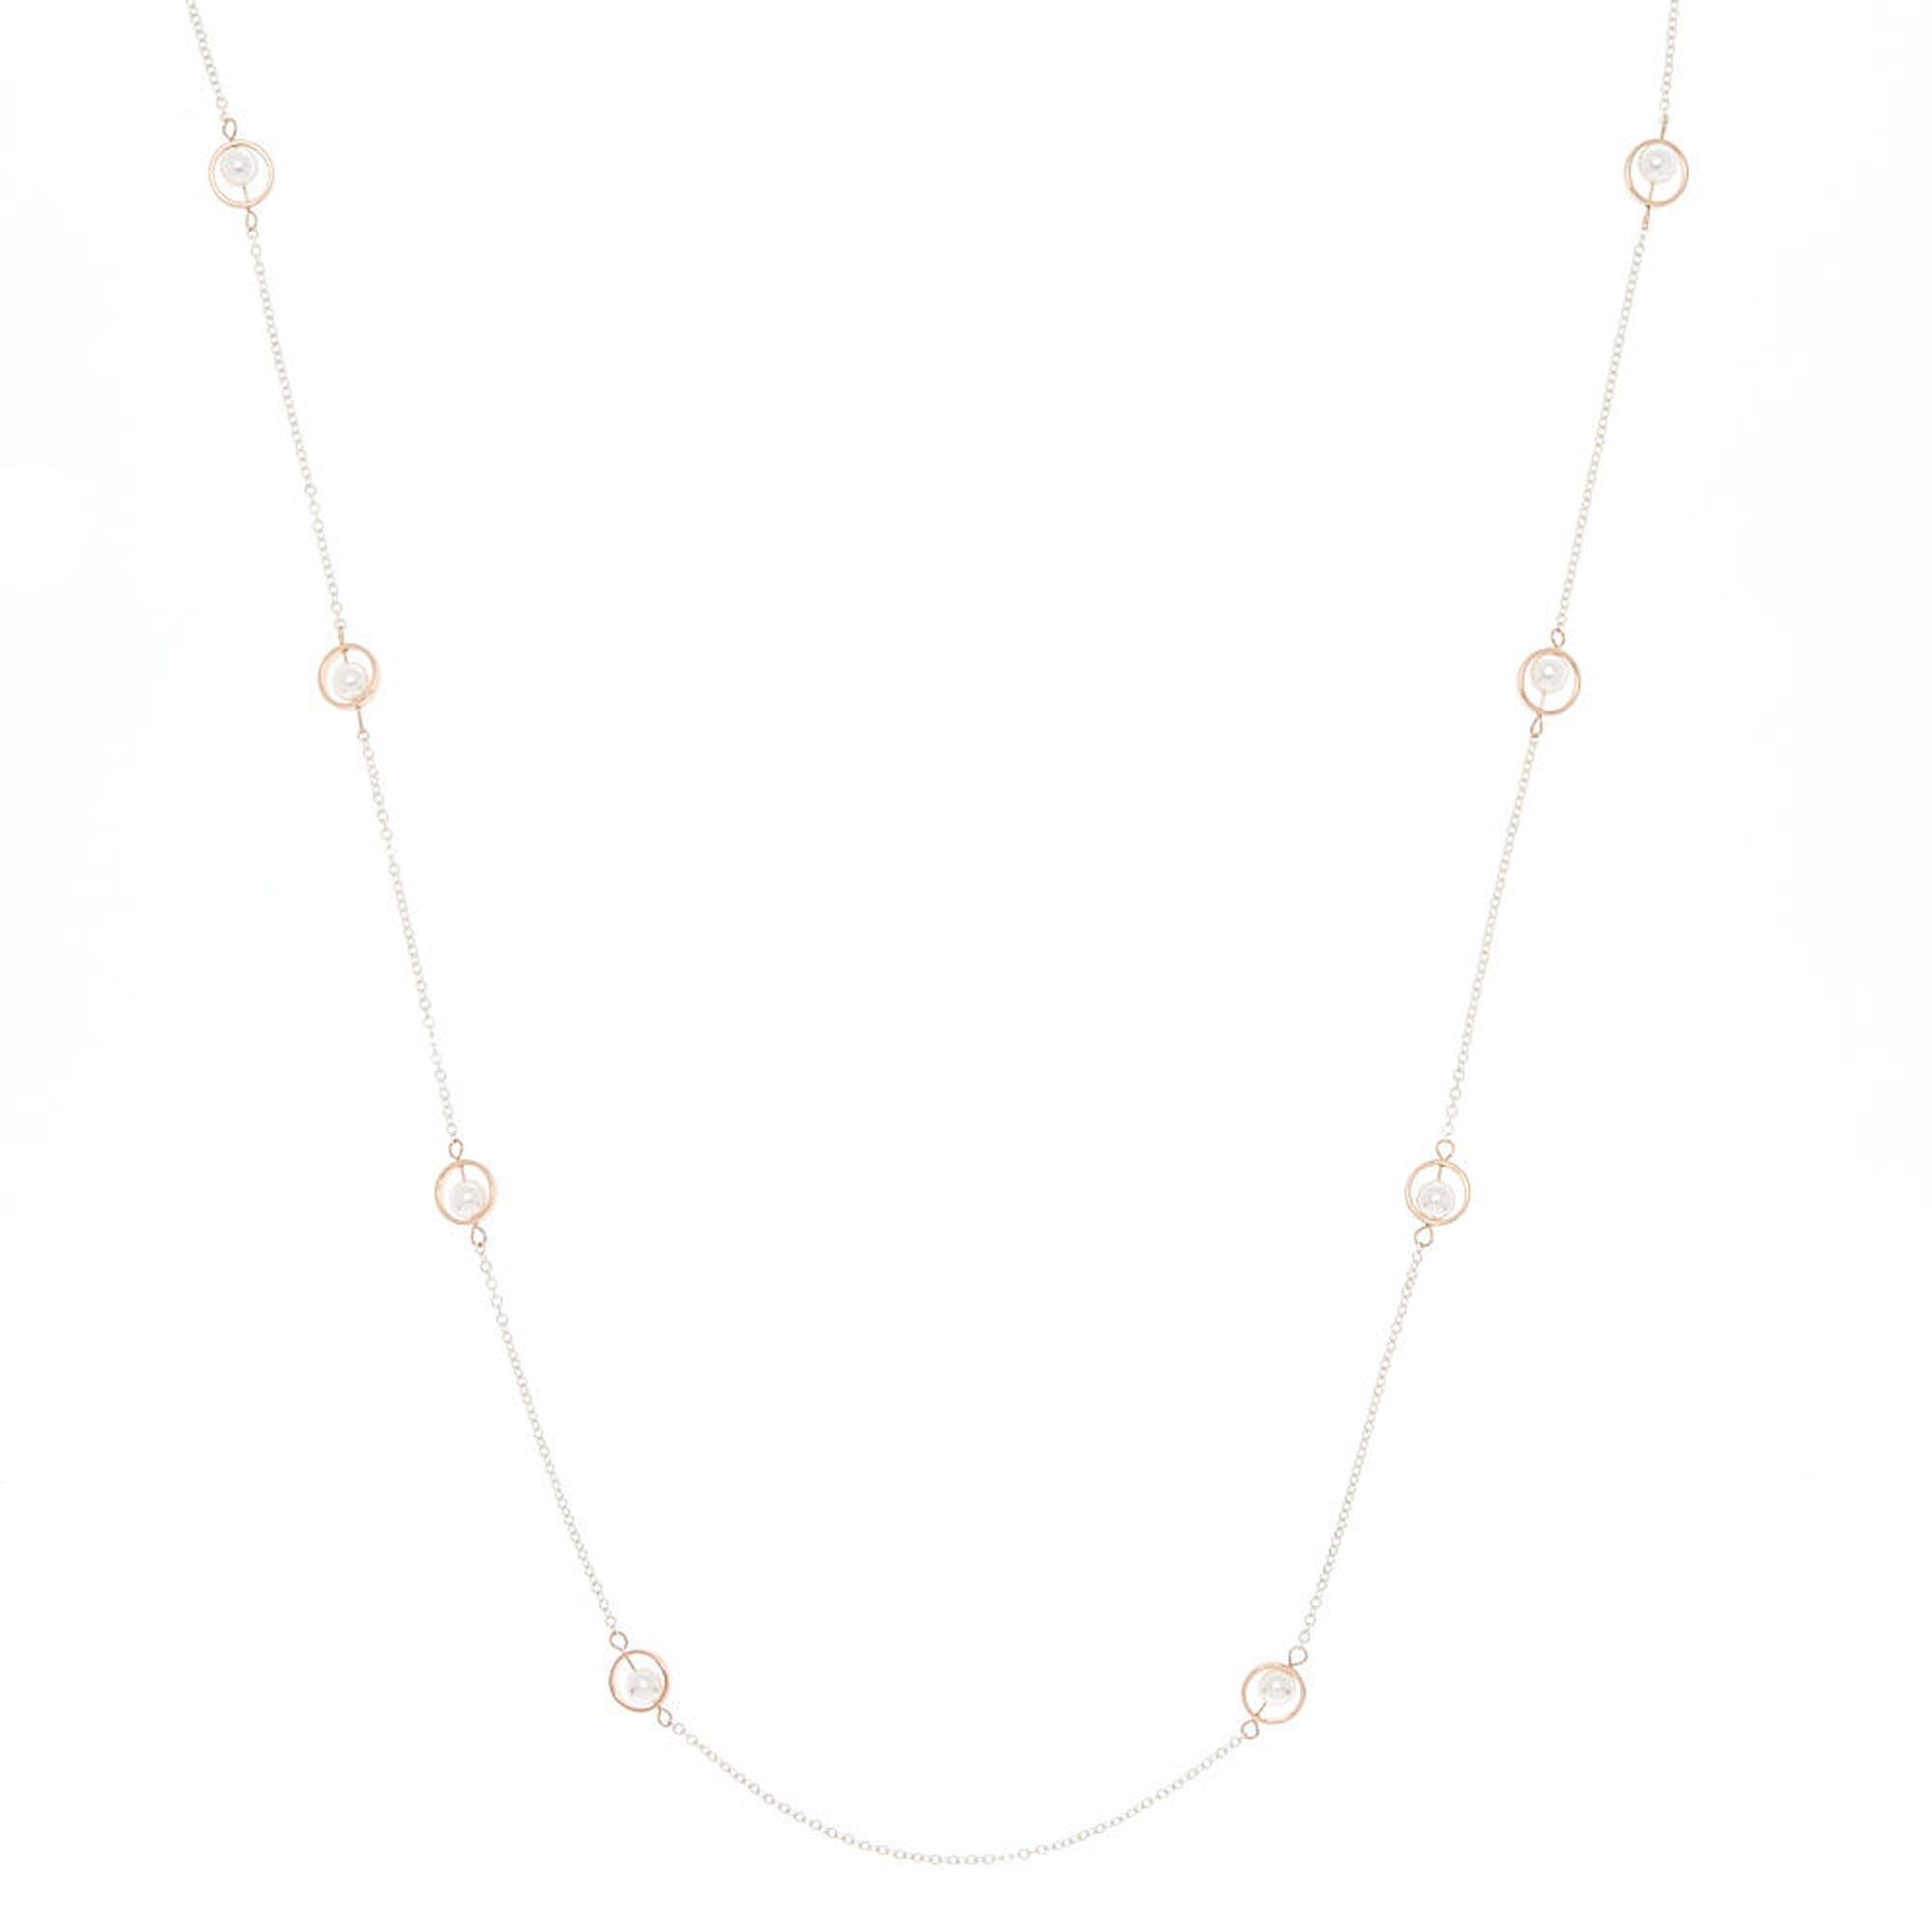 Silver rose gold pearl long pendant necklace icing us silver amp rose gold pearl long pendant necklace aloadofball Image collections